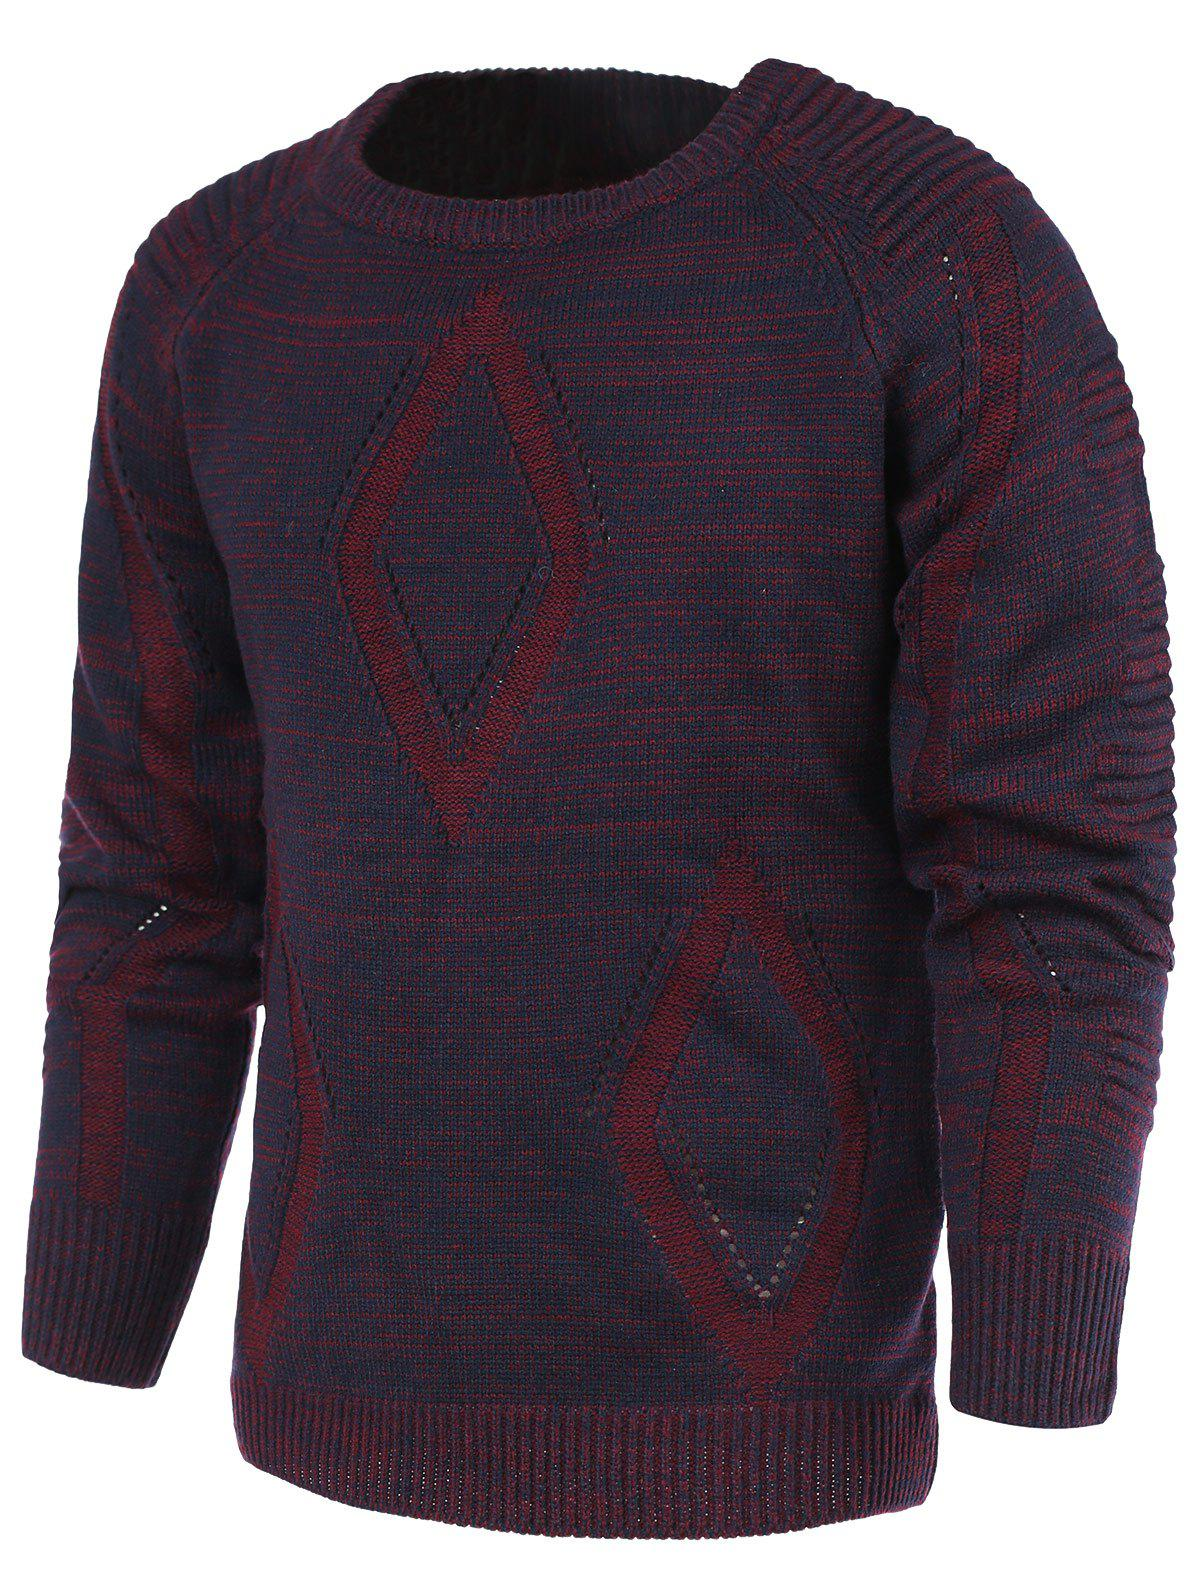 Rhombus Pattern Ribbed Crew Neck Raglan Sleeve Men's Sweater - XL PURPLE